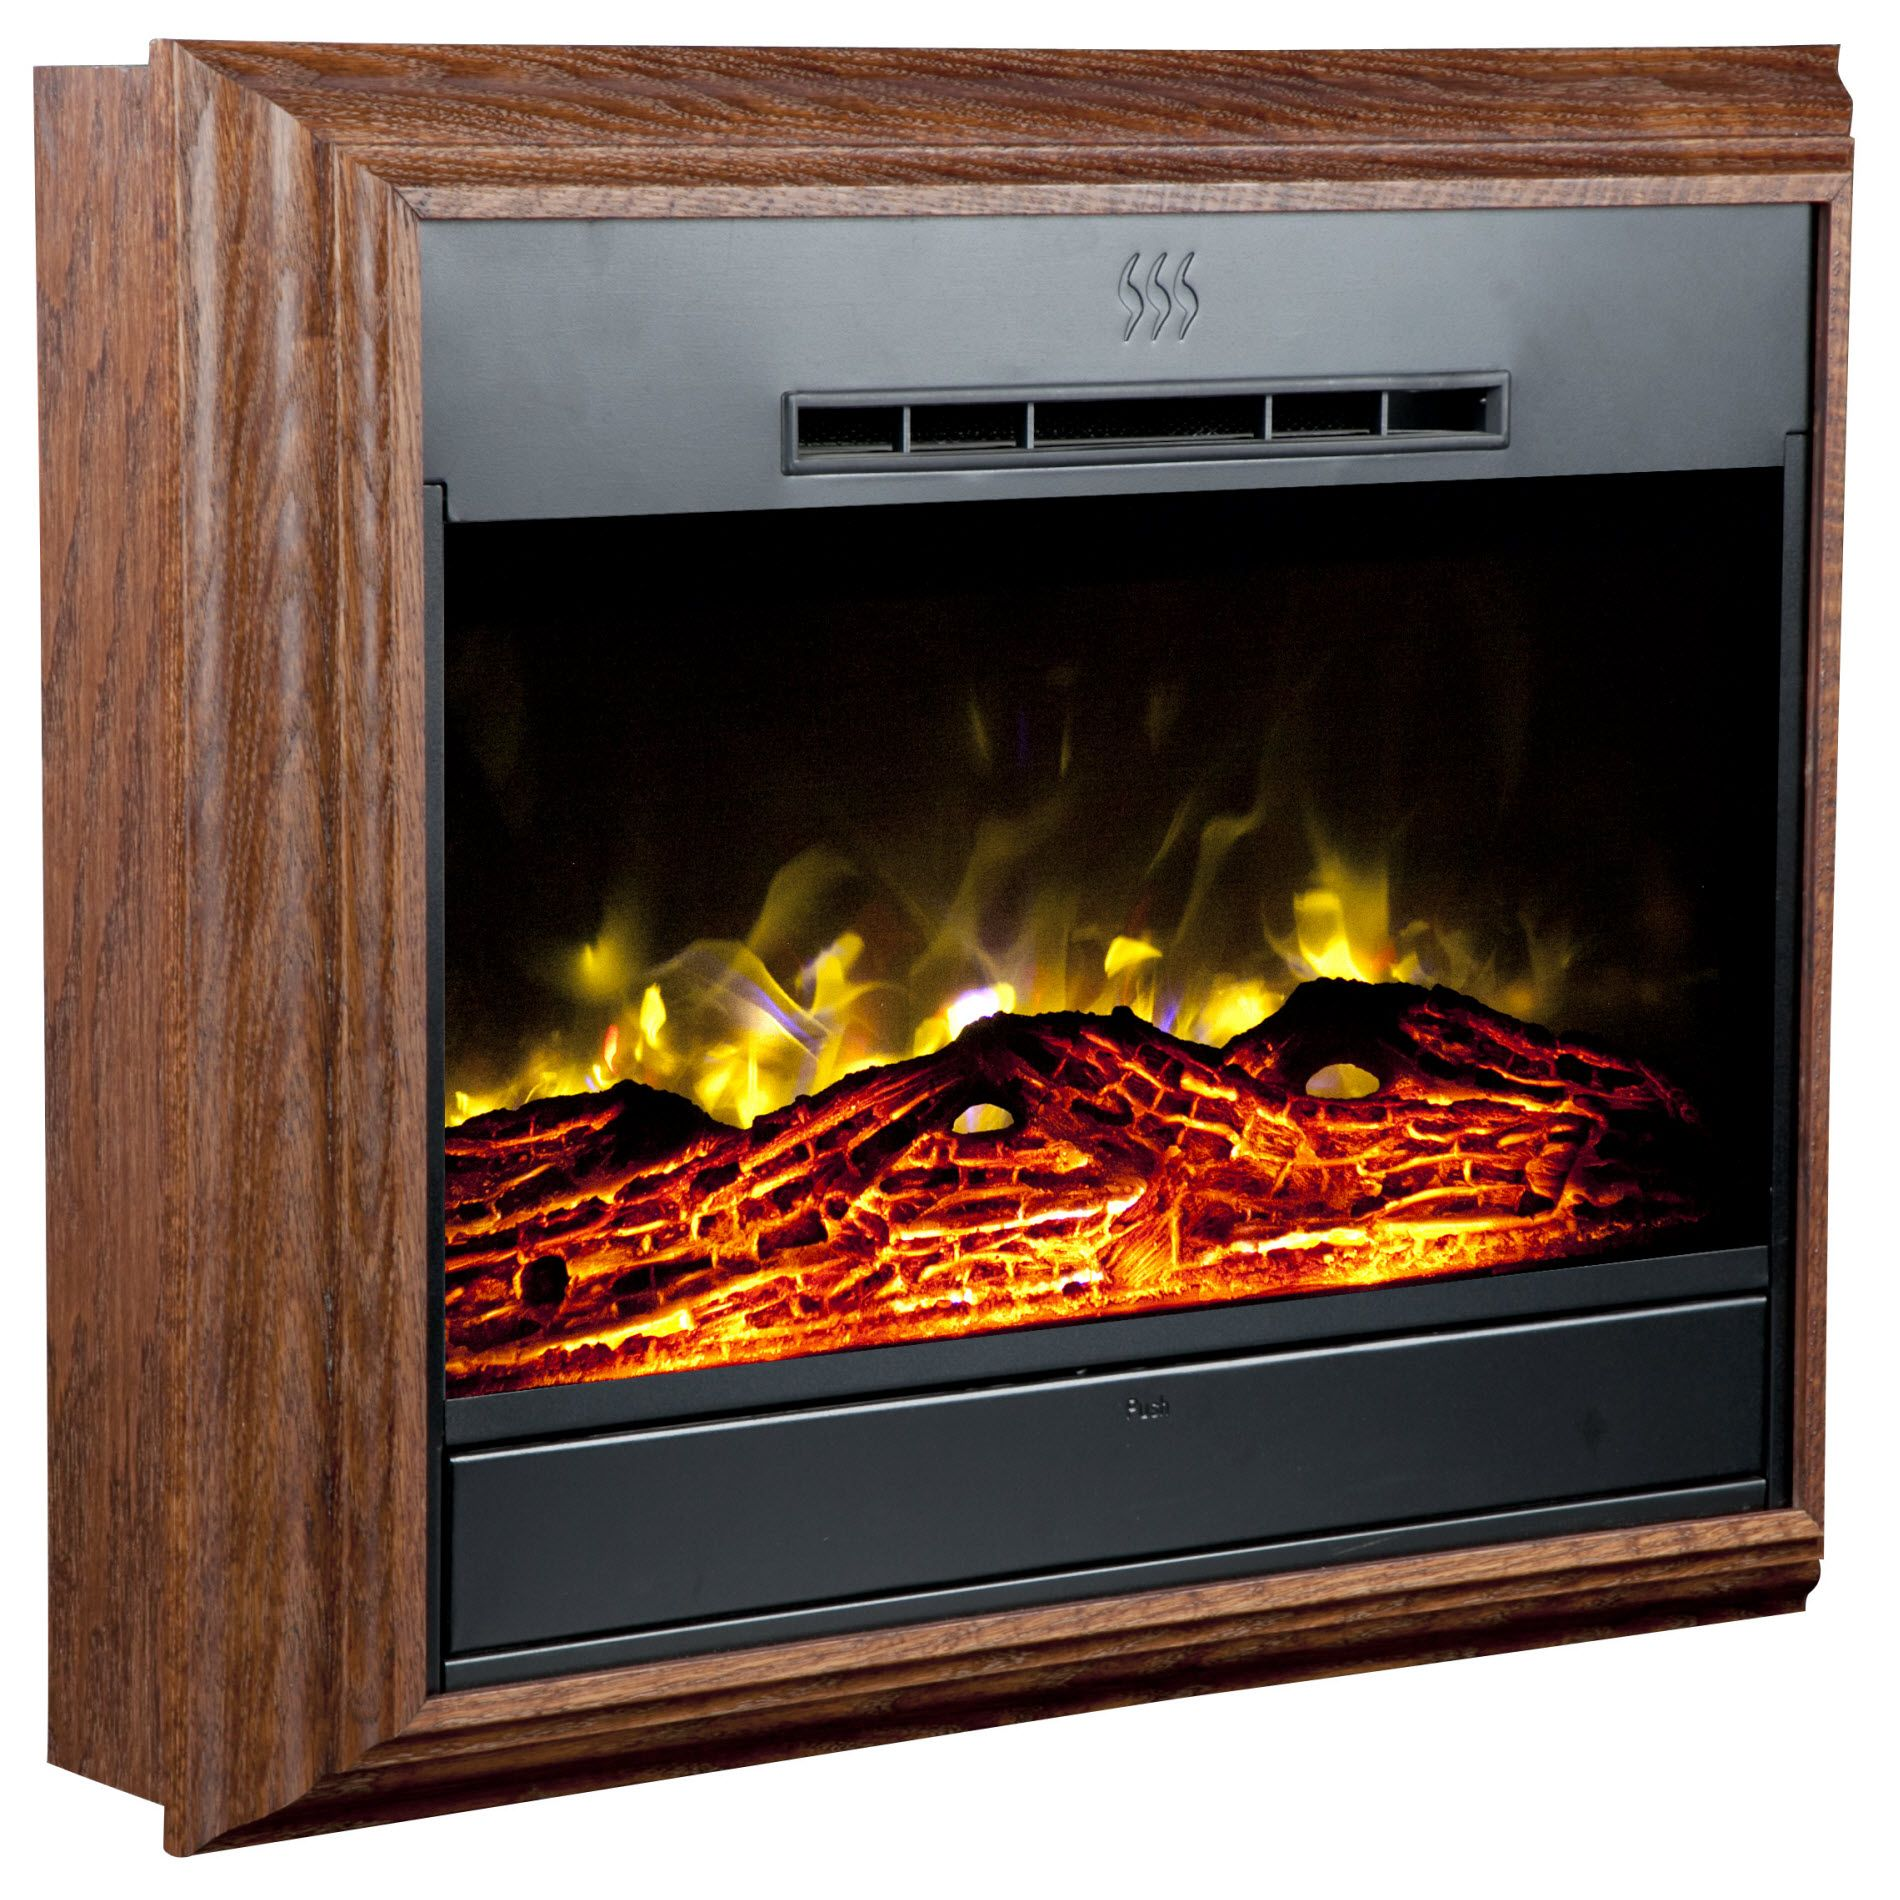 Heat Surge Portrait Wall-Mounted Electric Fireplace  - Dark Oak